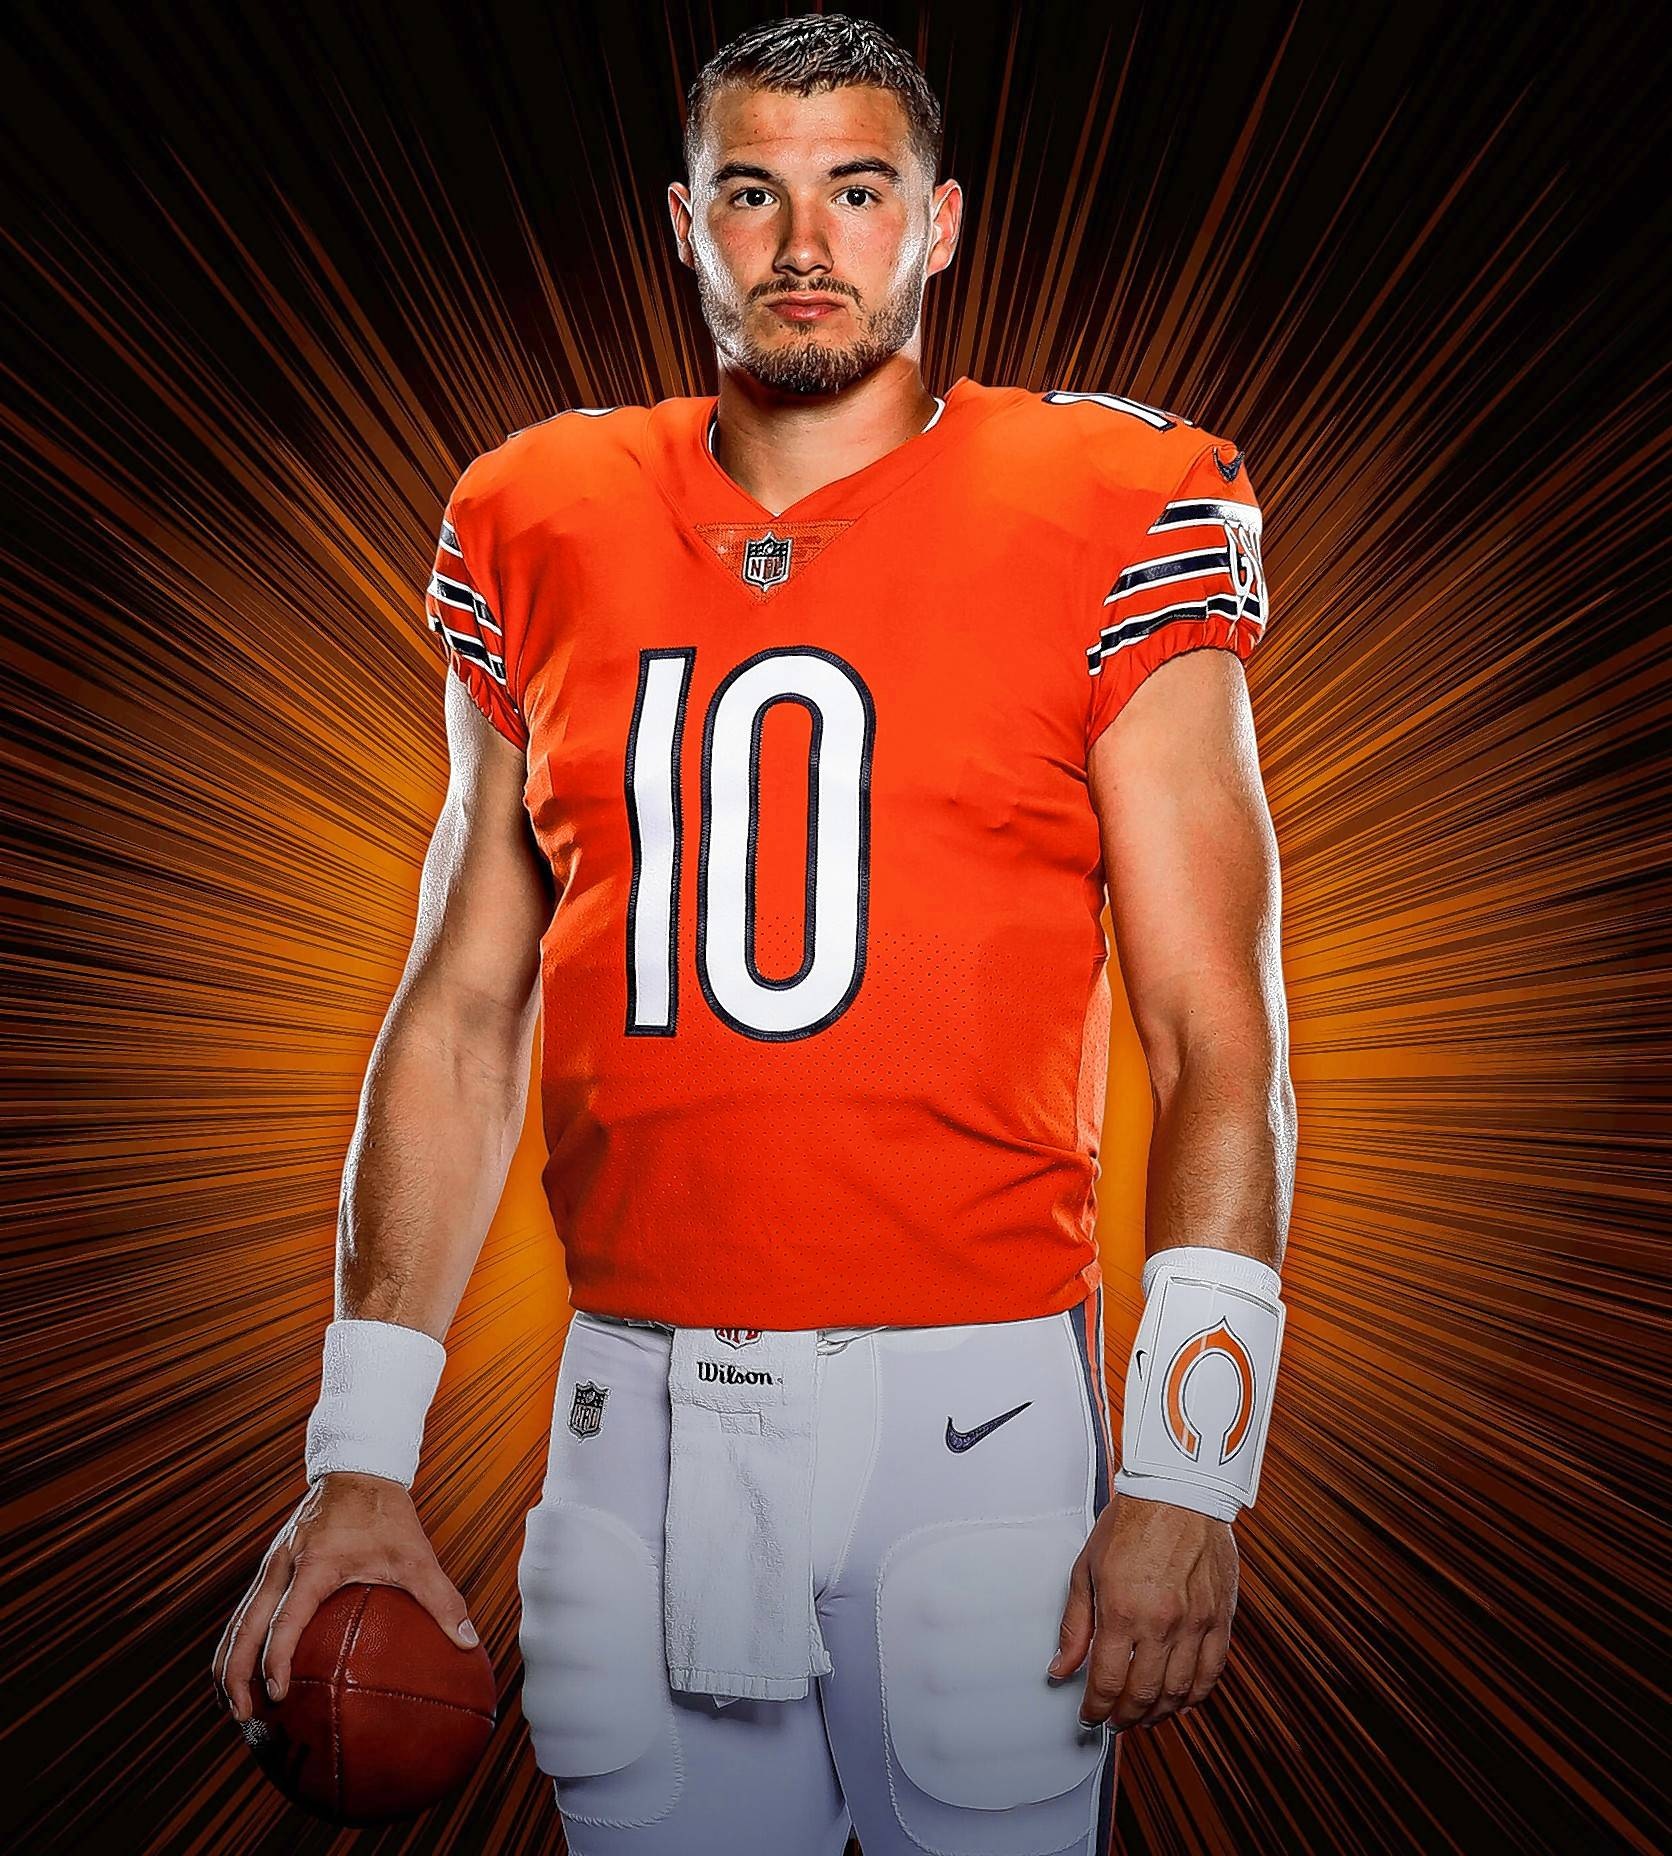 Quarterback Mitch Trubisky models the team's orange jersey for this season.